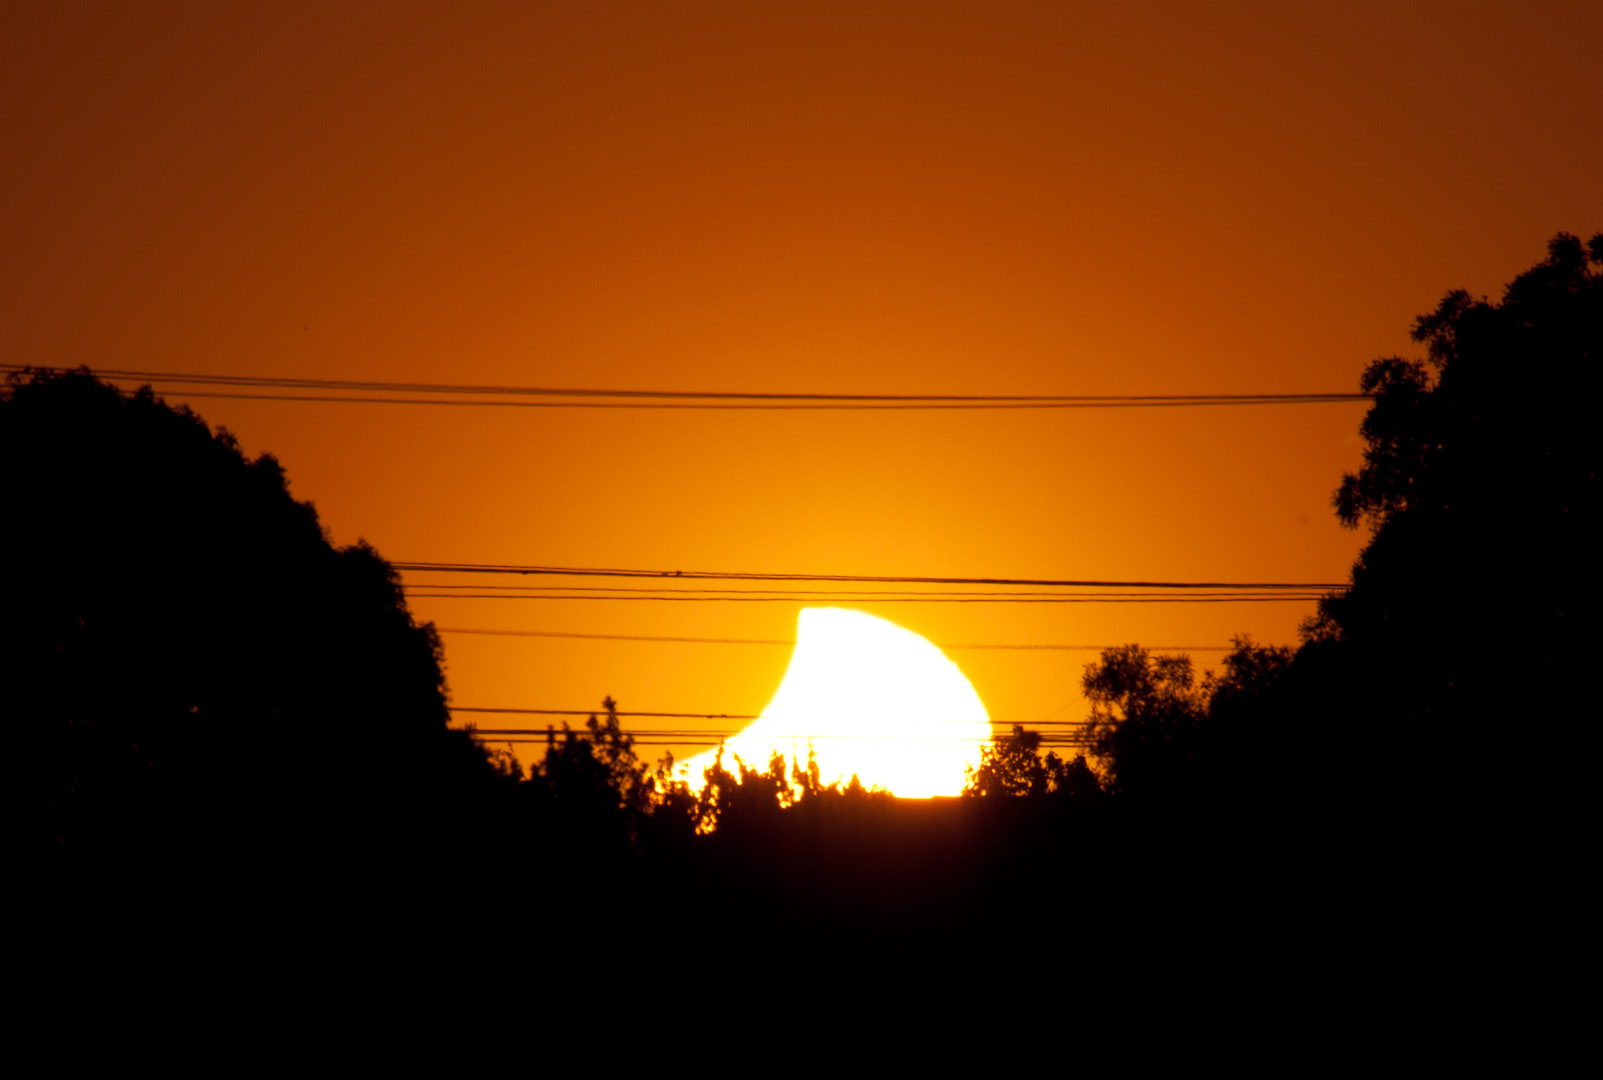 Partial Solar Eclipse From Christchurch, New Zealand - Nov. 25